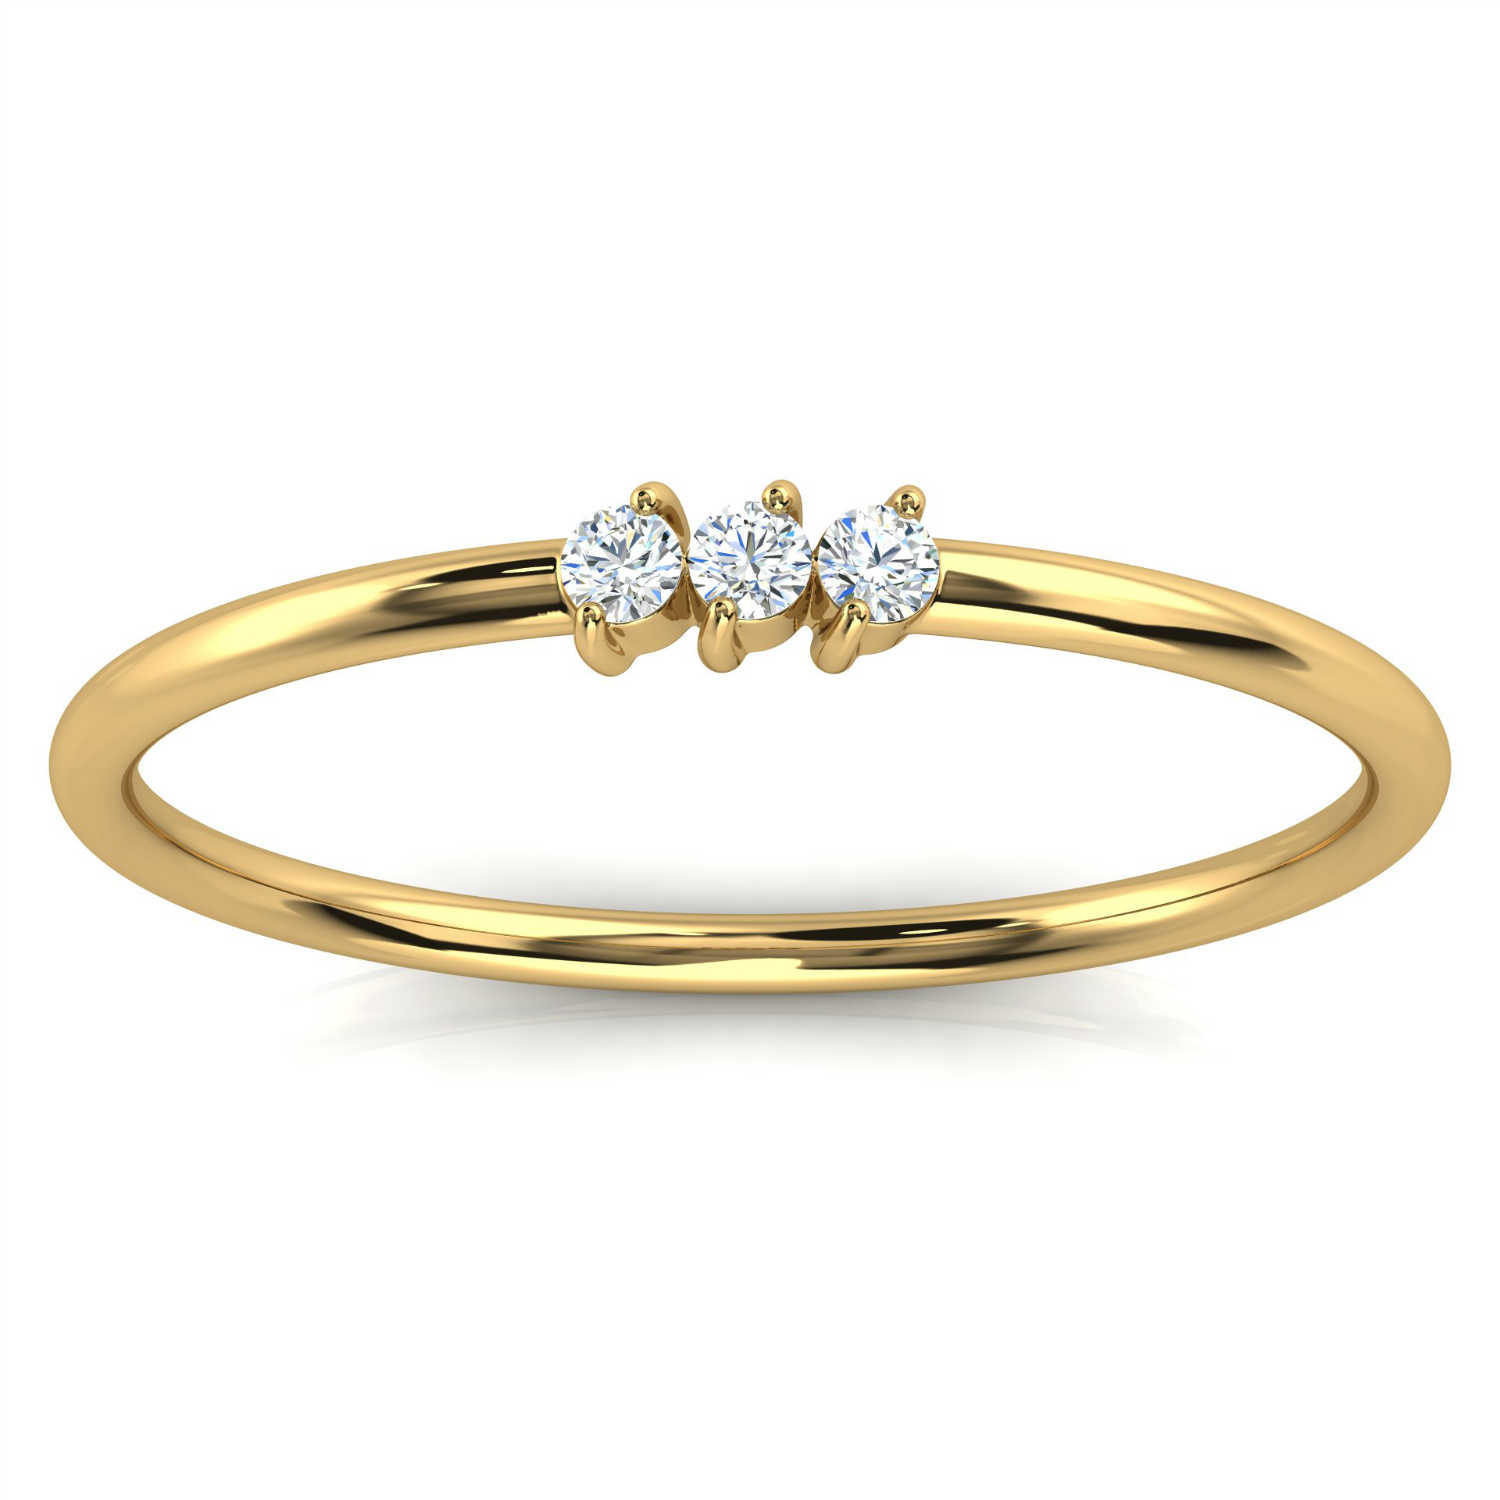 14K Yellow Gold Elissa Minimalist Organic Design Diamond Ring (1/20 ct.tw)